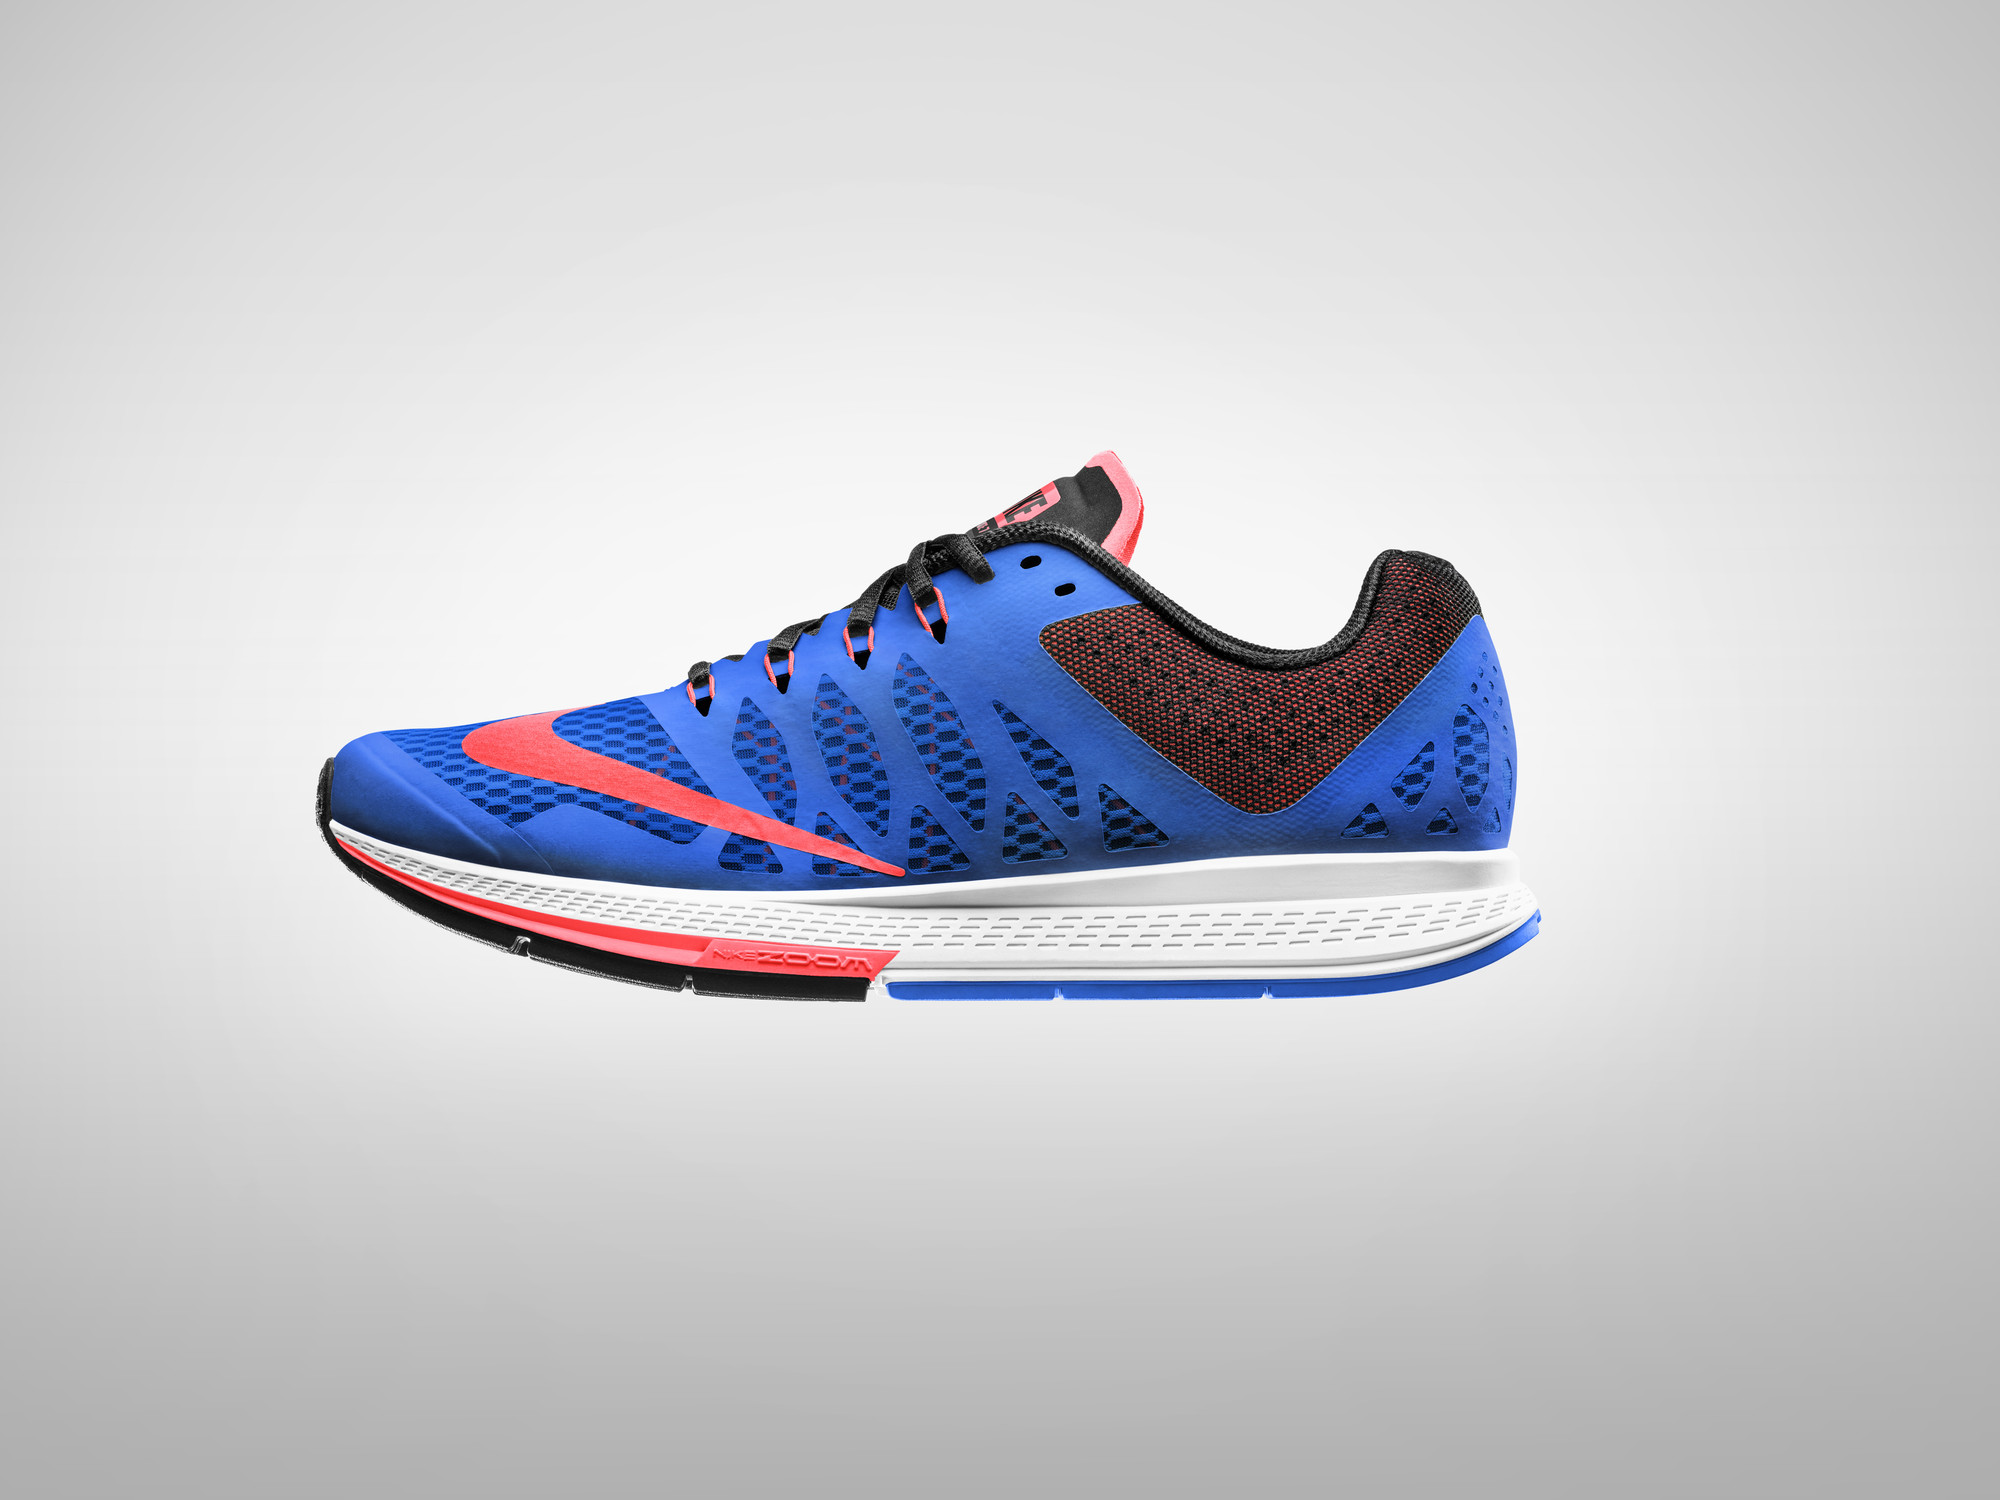 Nike 831562 800: Air Zoom Winflo 3 Orange/Blue Casual Running